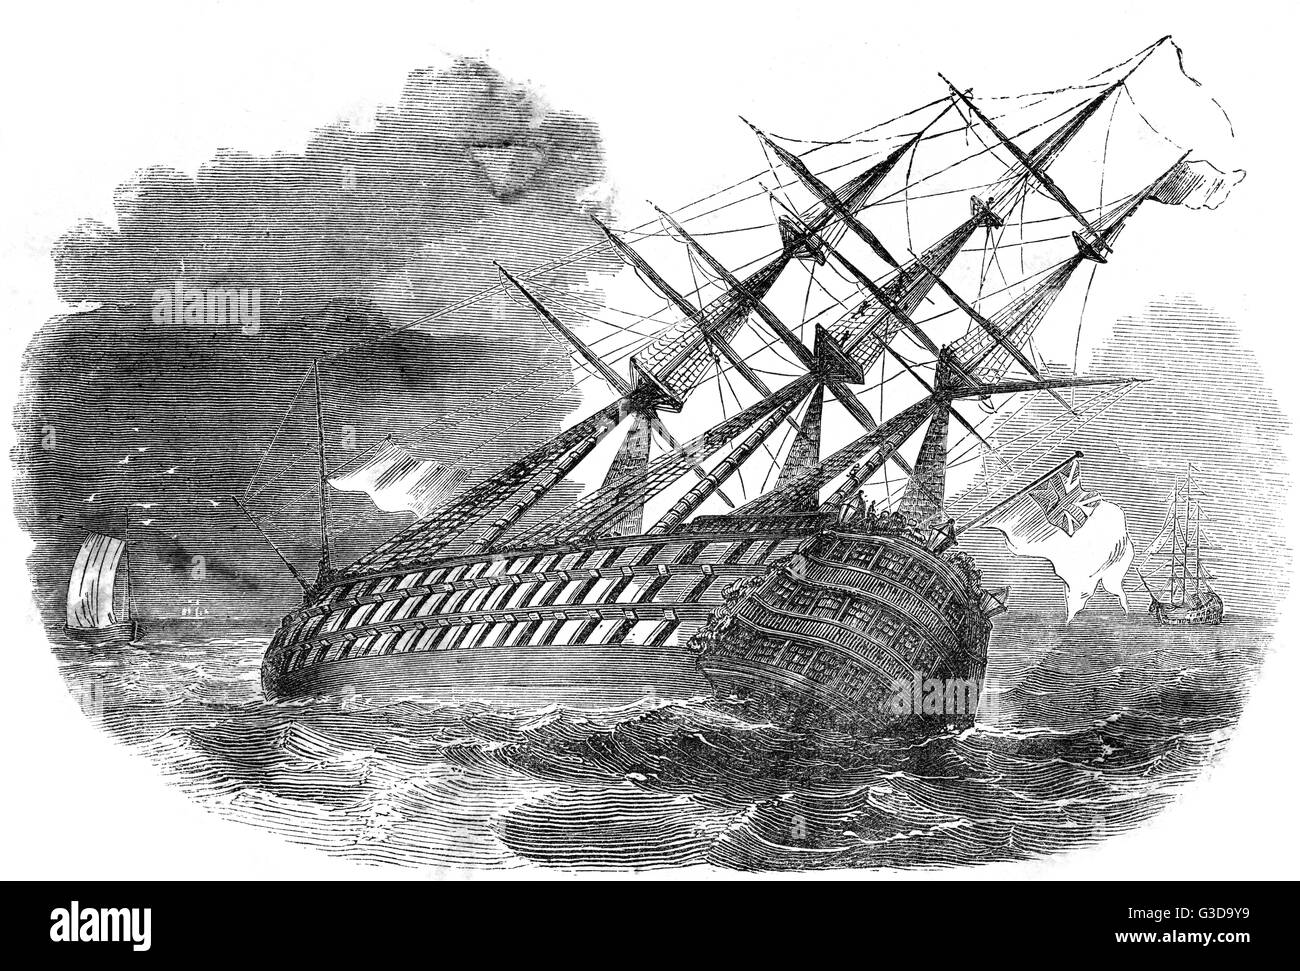 The HMS Royal George was built at Woolwich Dockyard and launched in 1756, and sank whilst anchored off Portsmouth - Stock Image